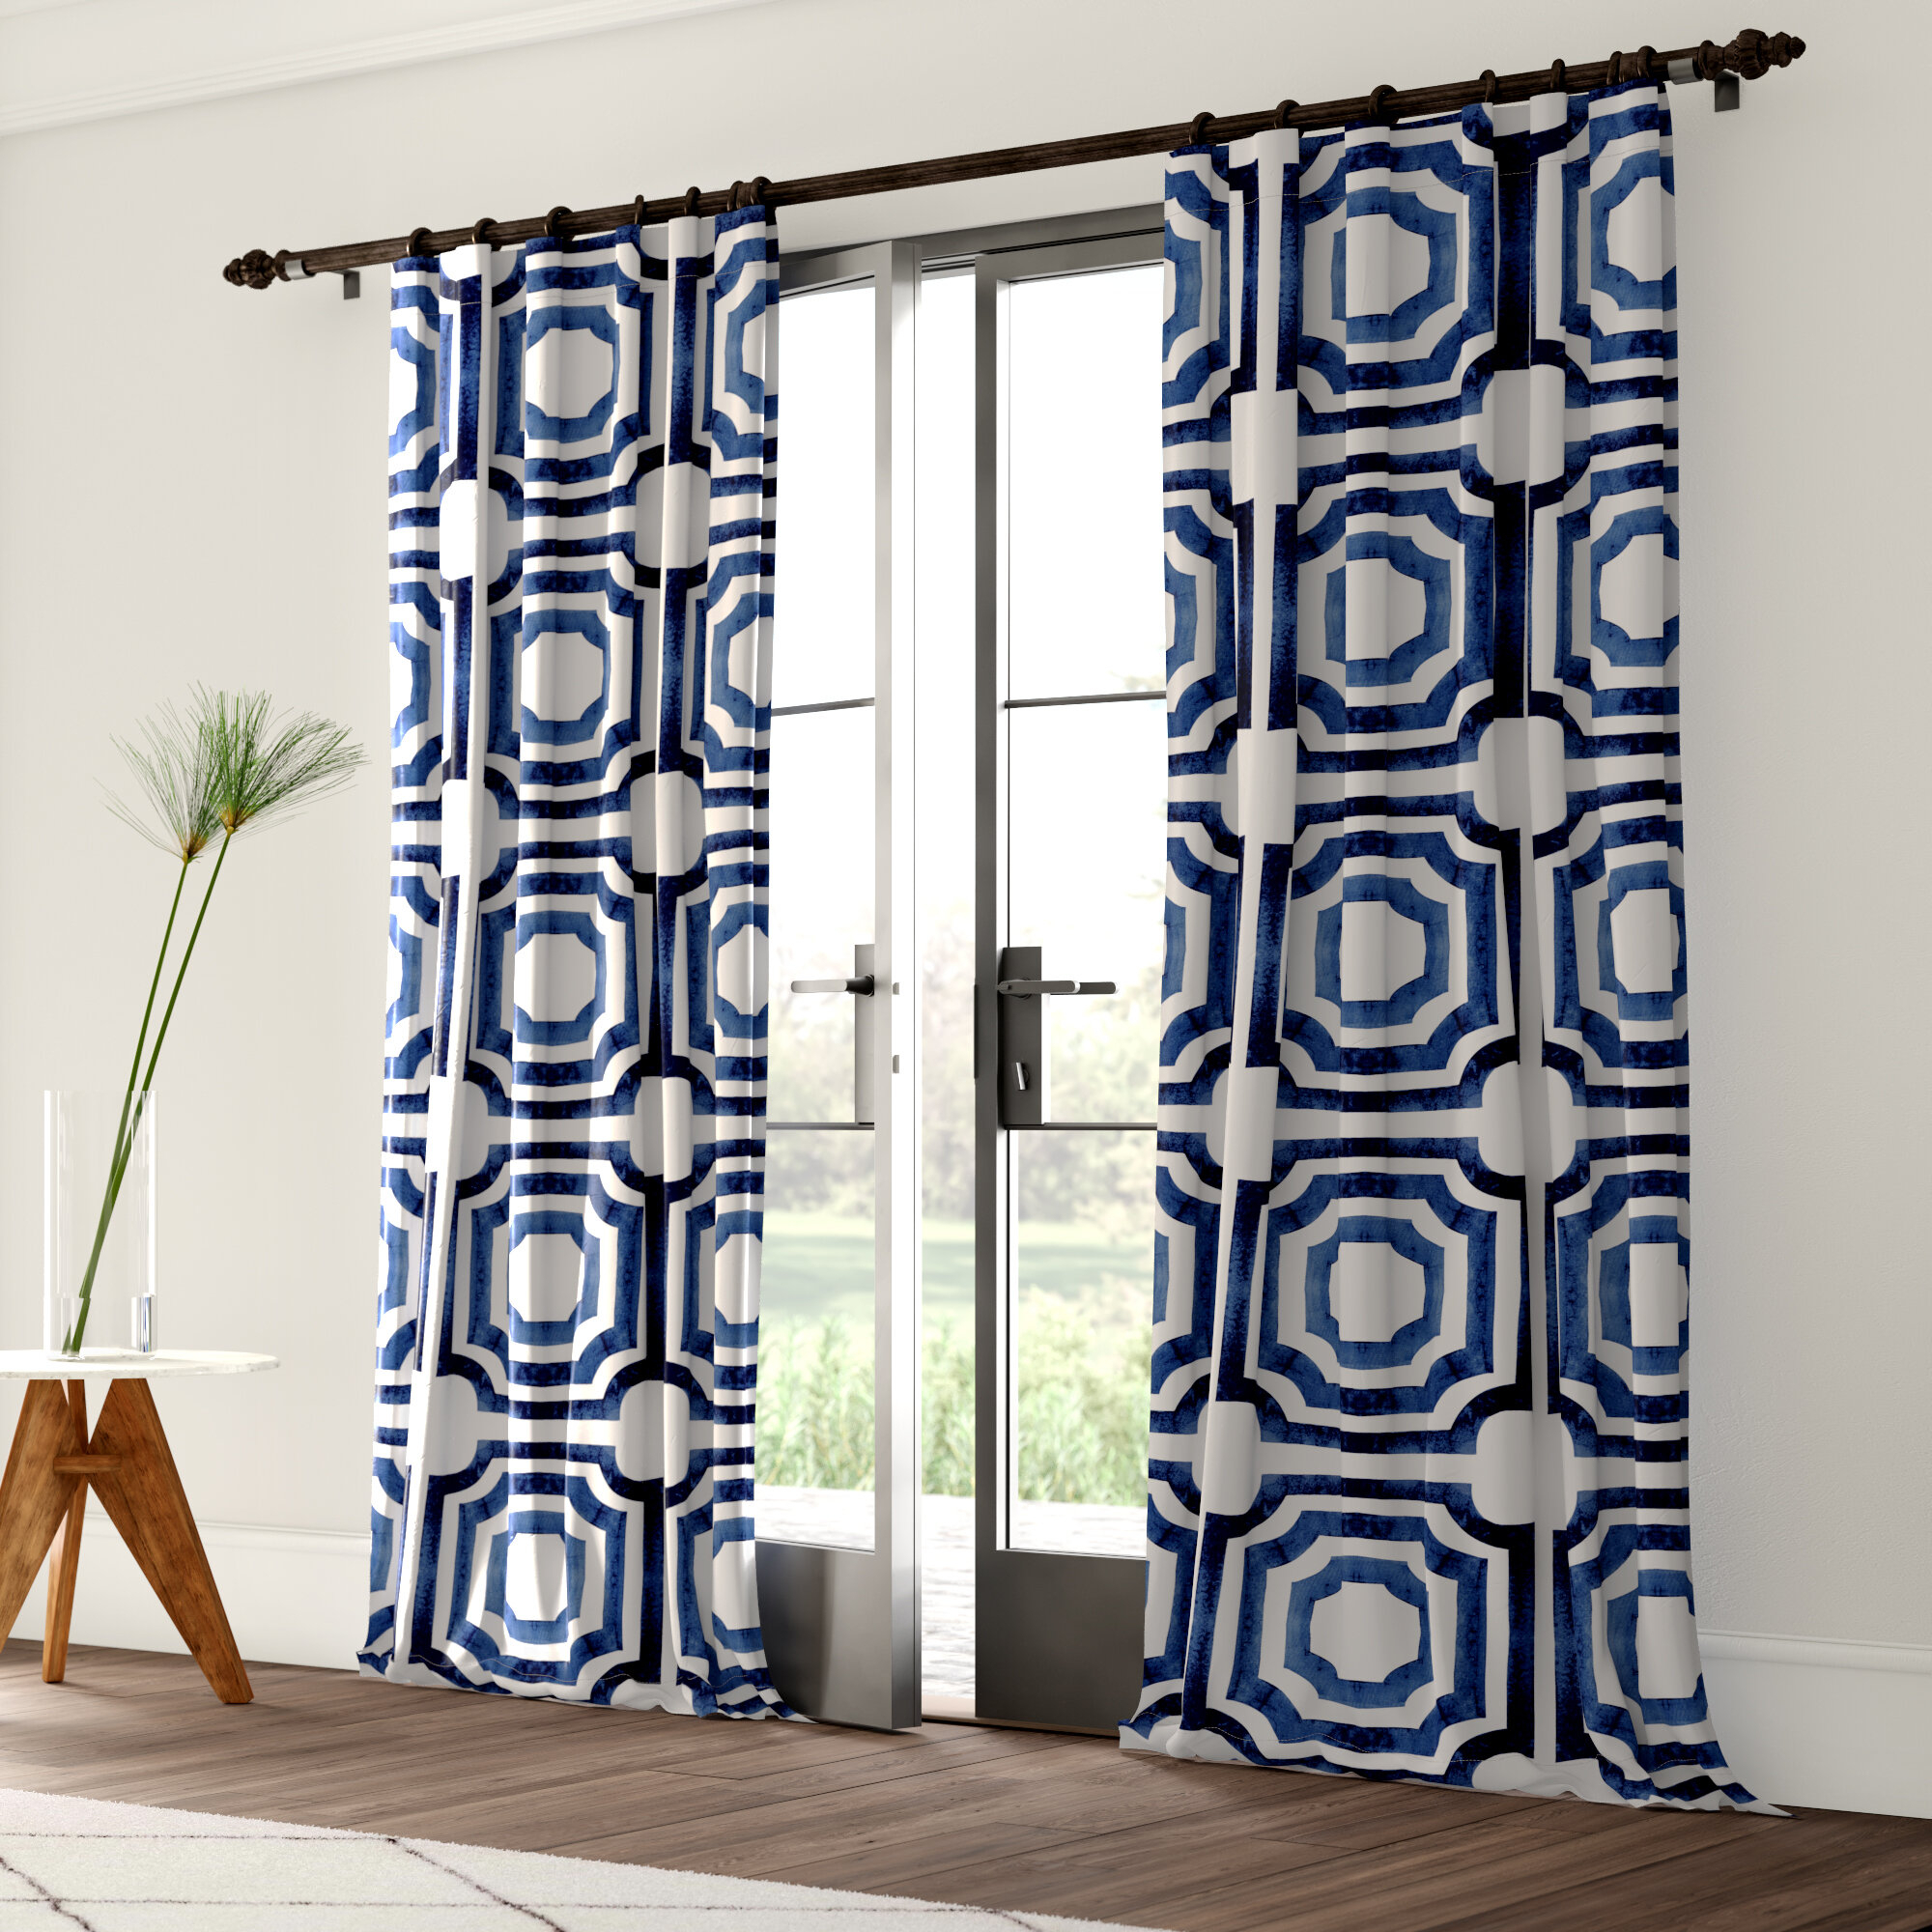 Mercury Row Donato Geometric Room Darkening Rod Pocket Pertaining To Mecca Printed Cotton Single Curtain Panels (View 7 of 20)